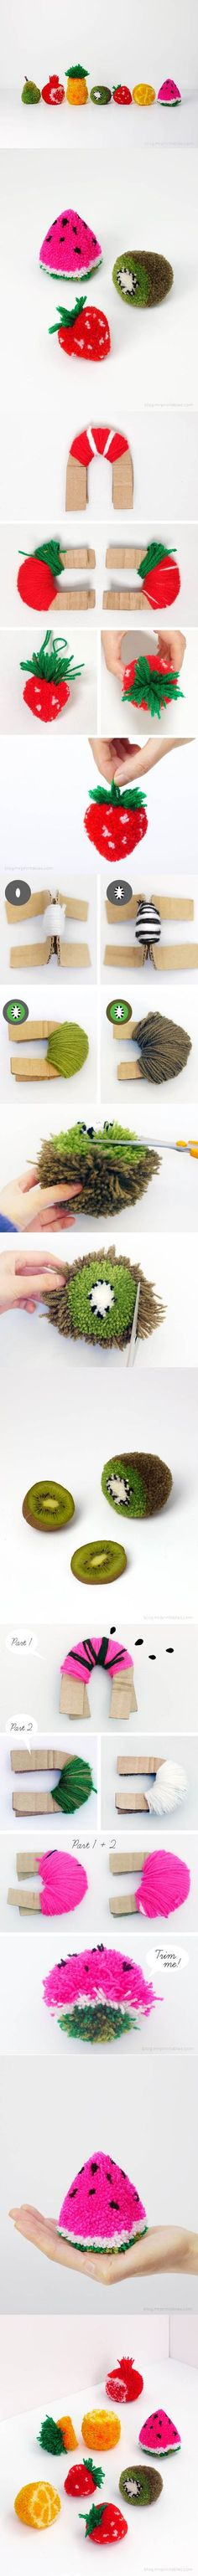 DIY Fruit Pom Poms | iCreativeIdeas.com Like Us on Facebook == https://www.facebook.com/icreativeideas